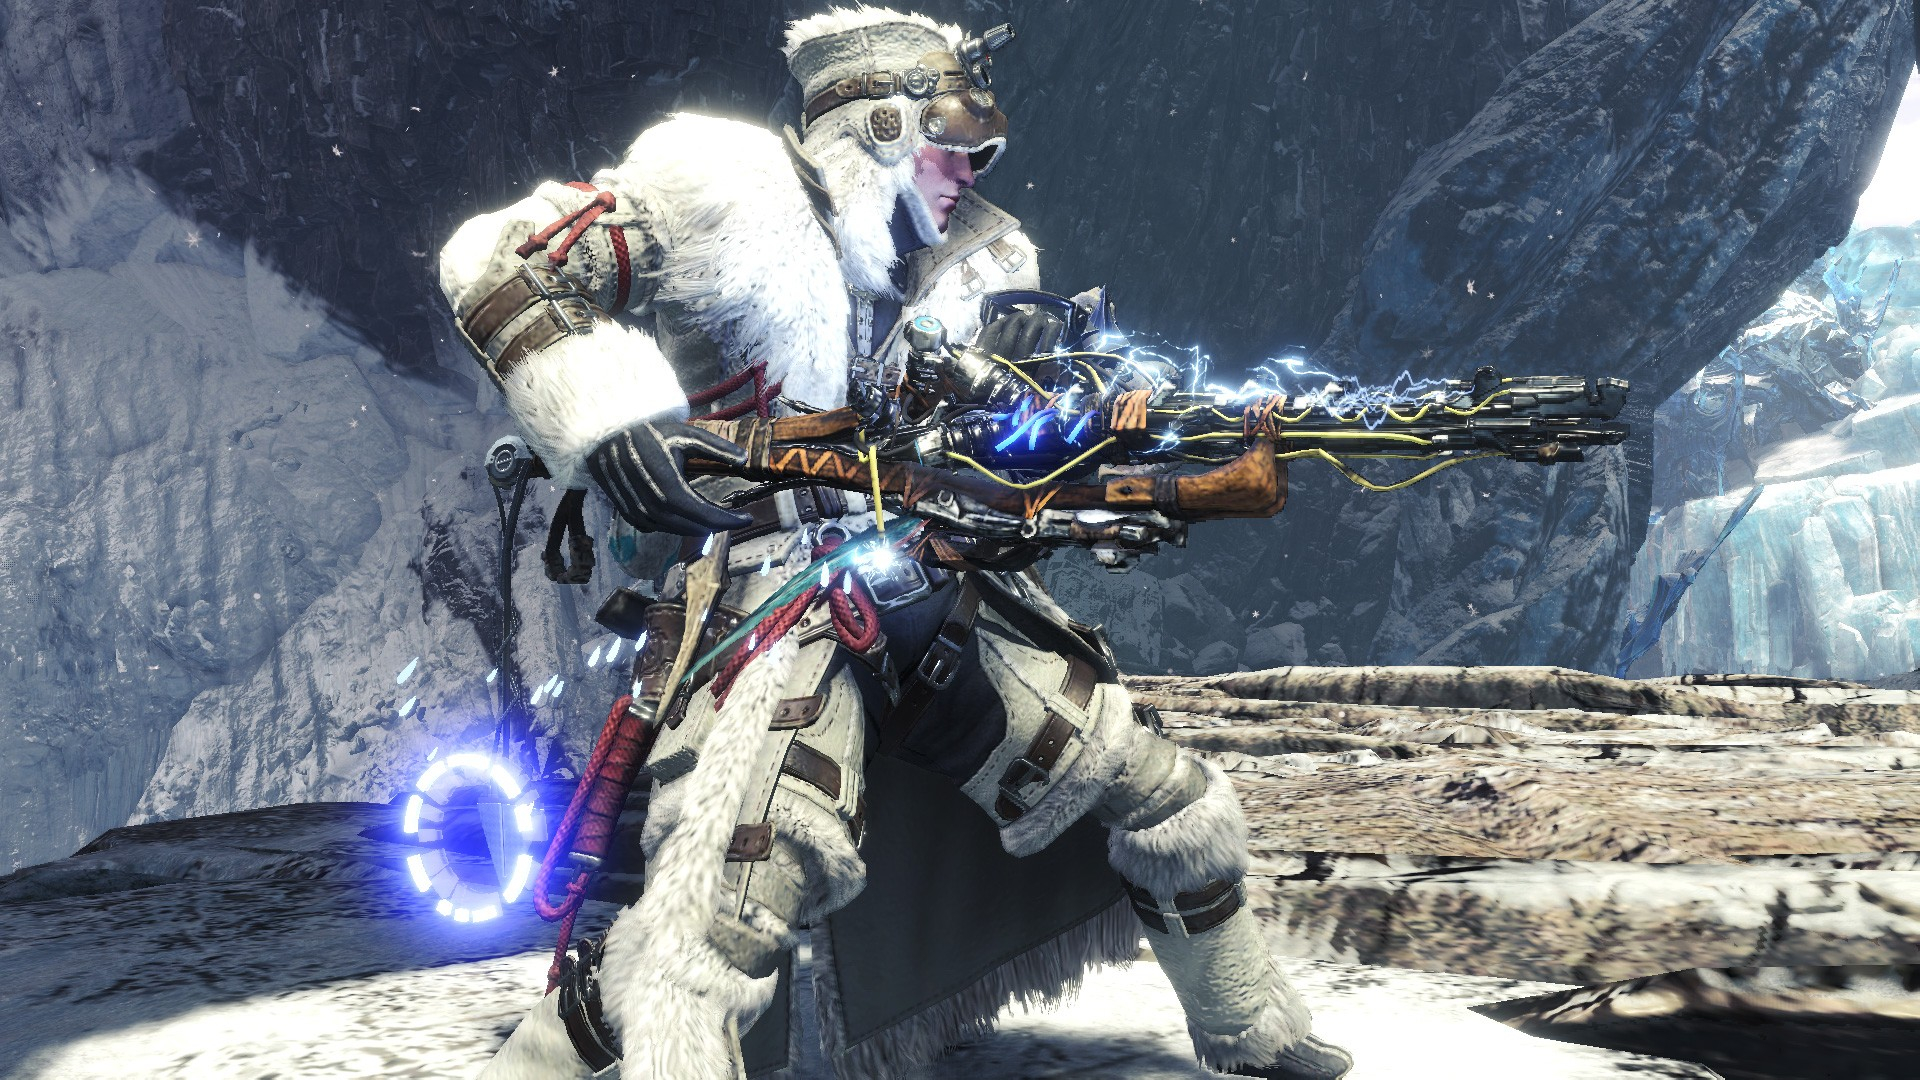 Monster Hunter World Winter Roadmap: Crossovers with Resident Evil, Horizon: Zero Dawn, and More Header Image